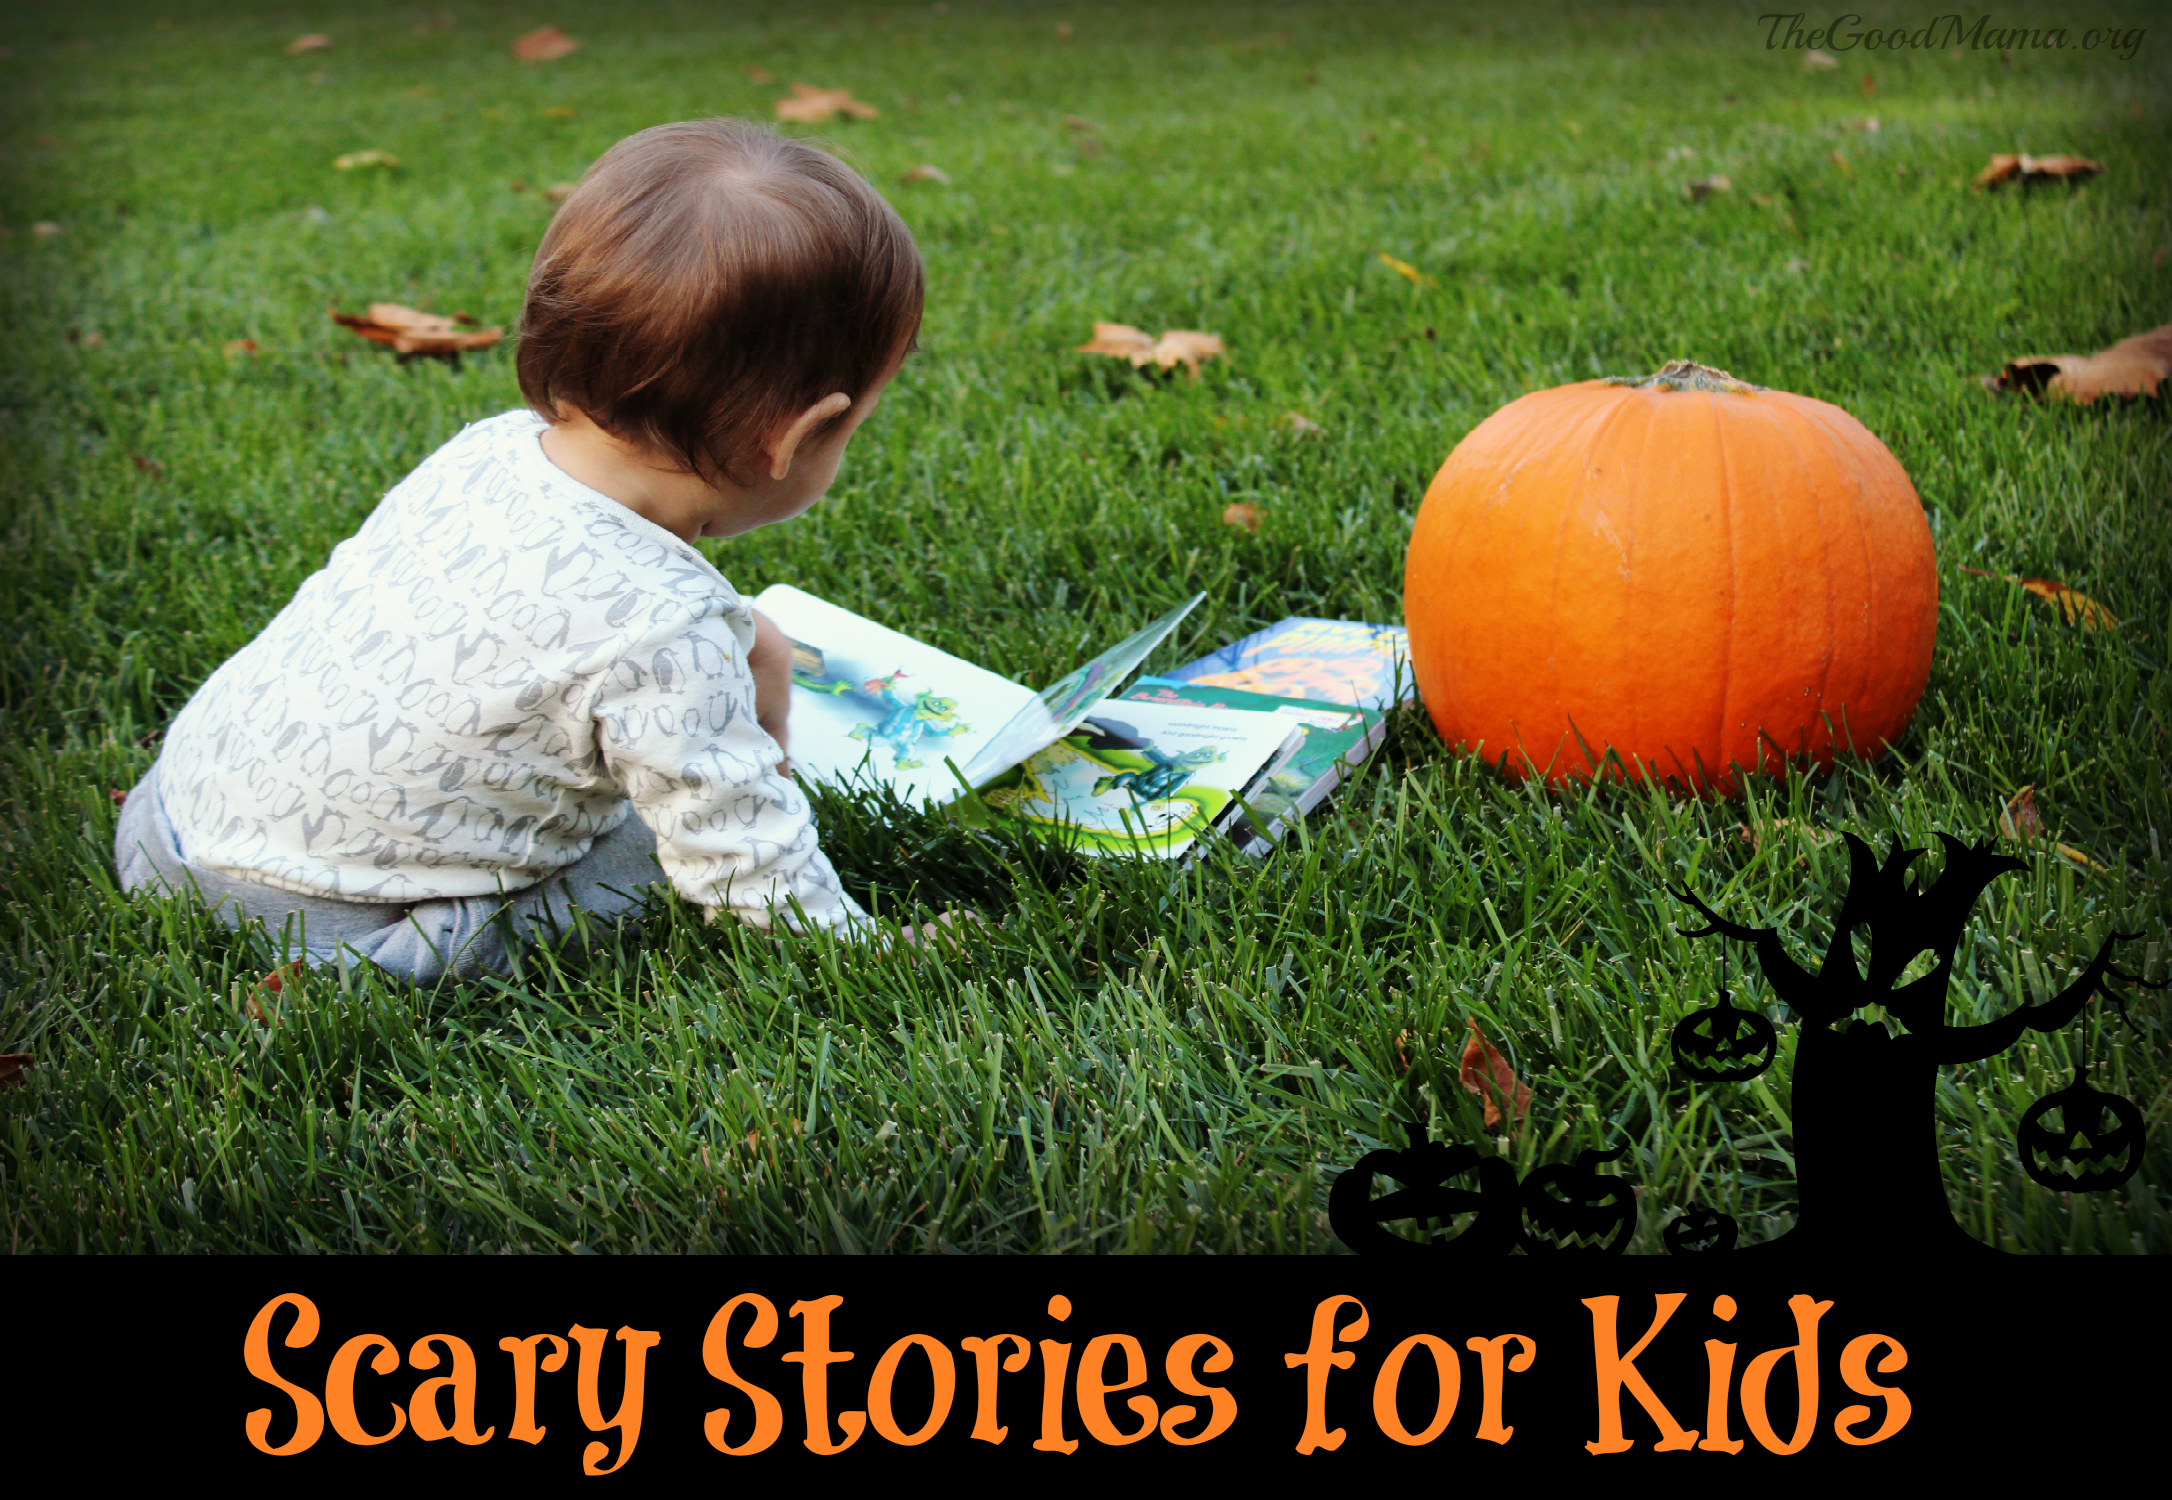 Scary Stories for Kids- Just in time for Halloween!